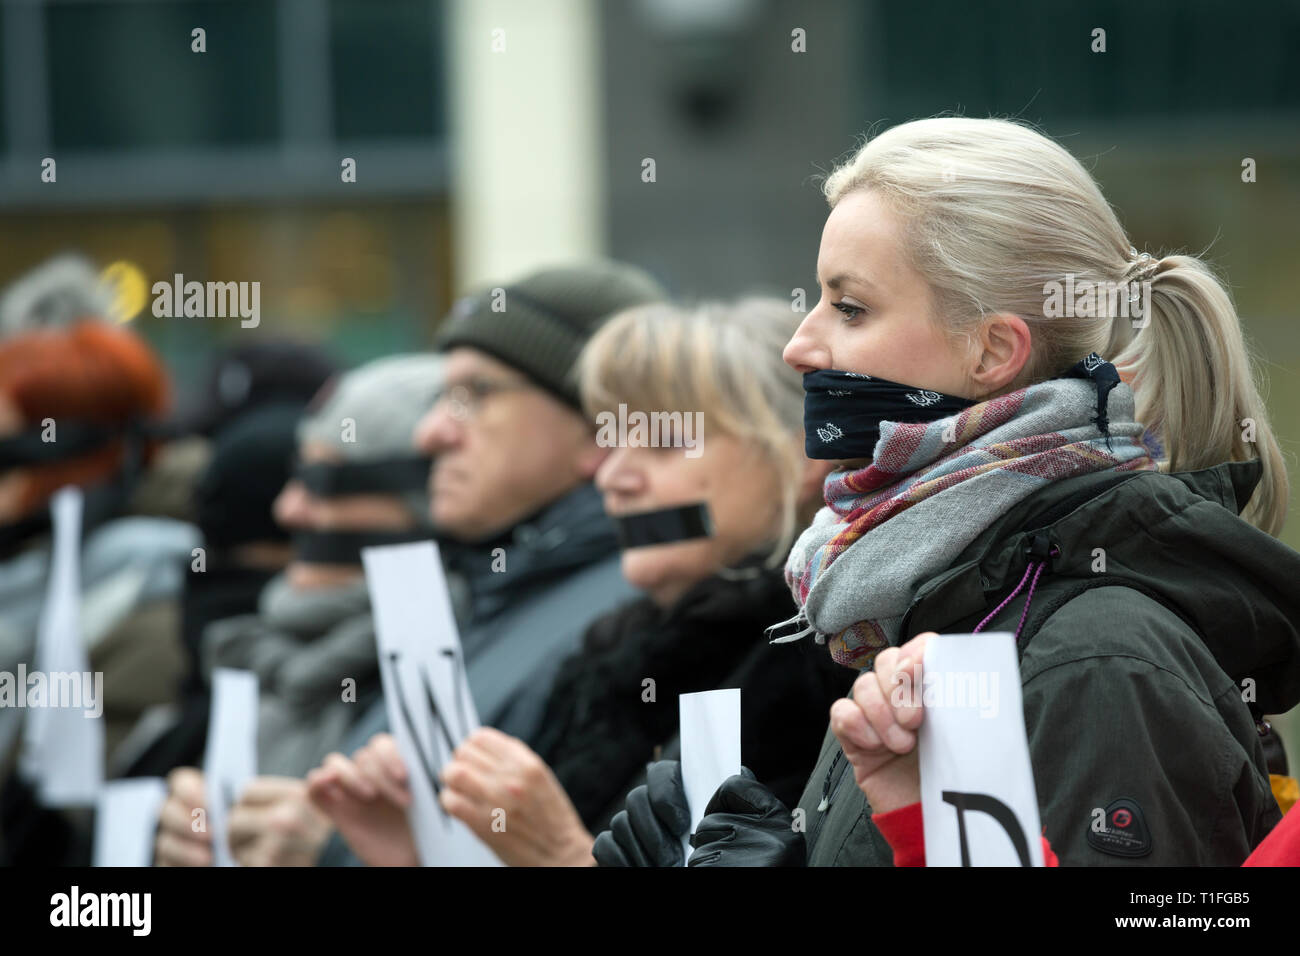 21.01.2018, Poznan, Wielkopolska, Poland - Action by KOD (Committee for the Defense of Democracy) against the standardization of justice and censorshi - Stock Image